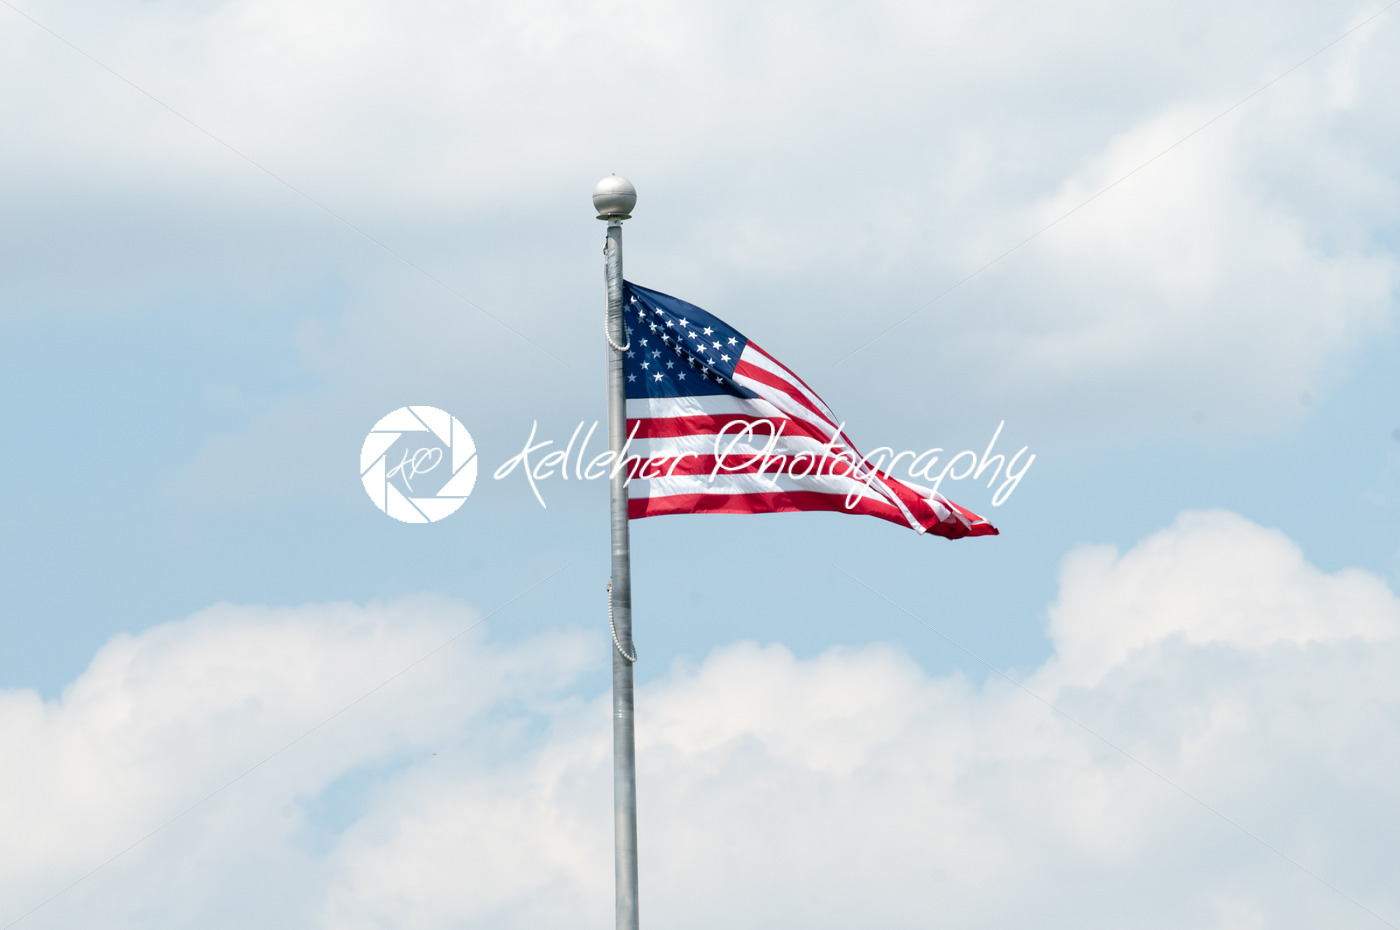 Flag of the United States of America with blue sky and clouds behind it - Kelleher Photography Store